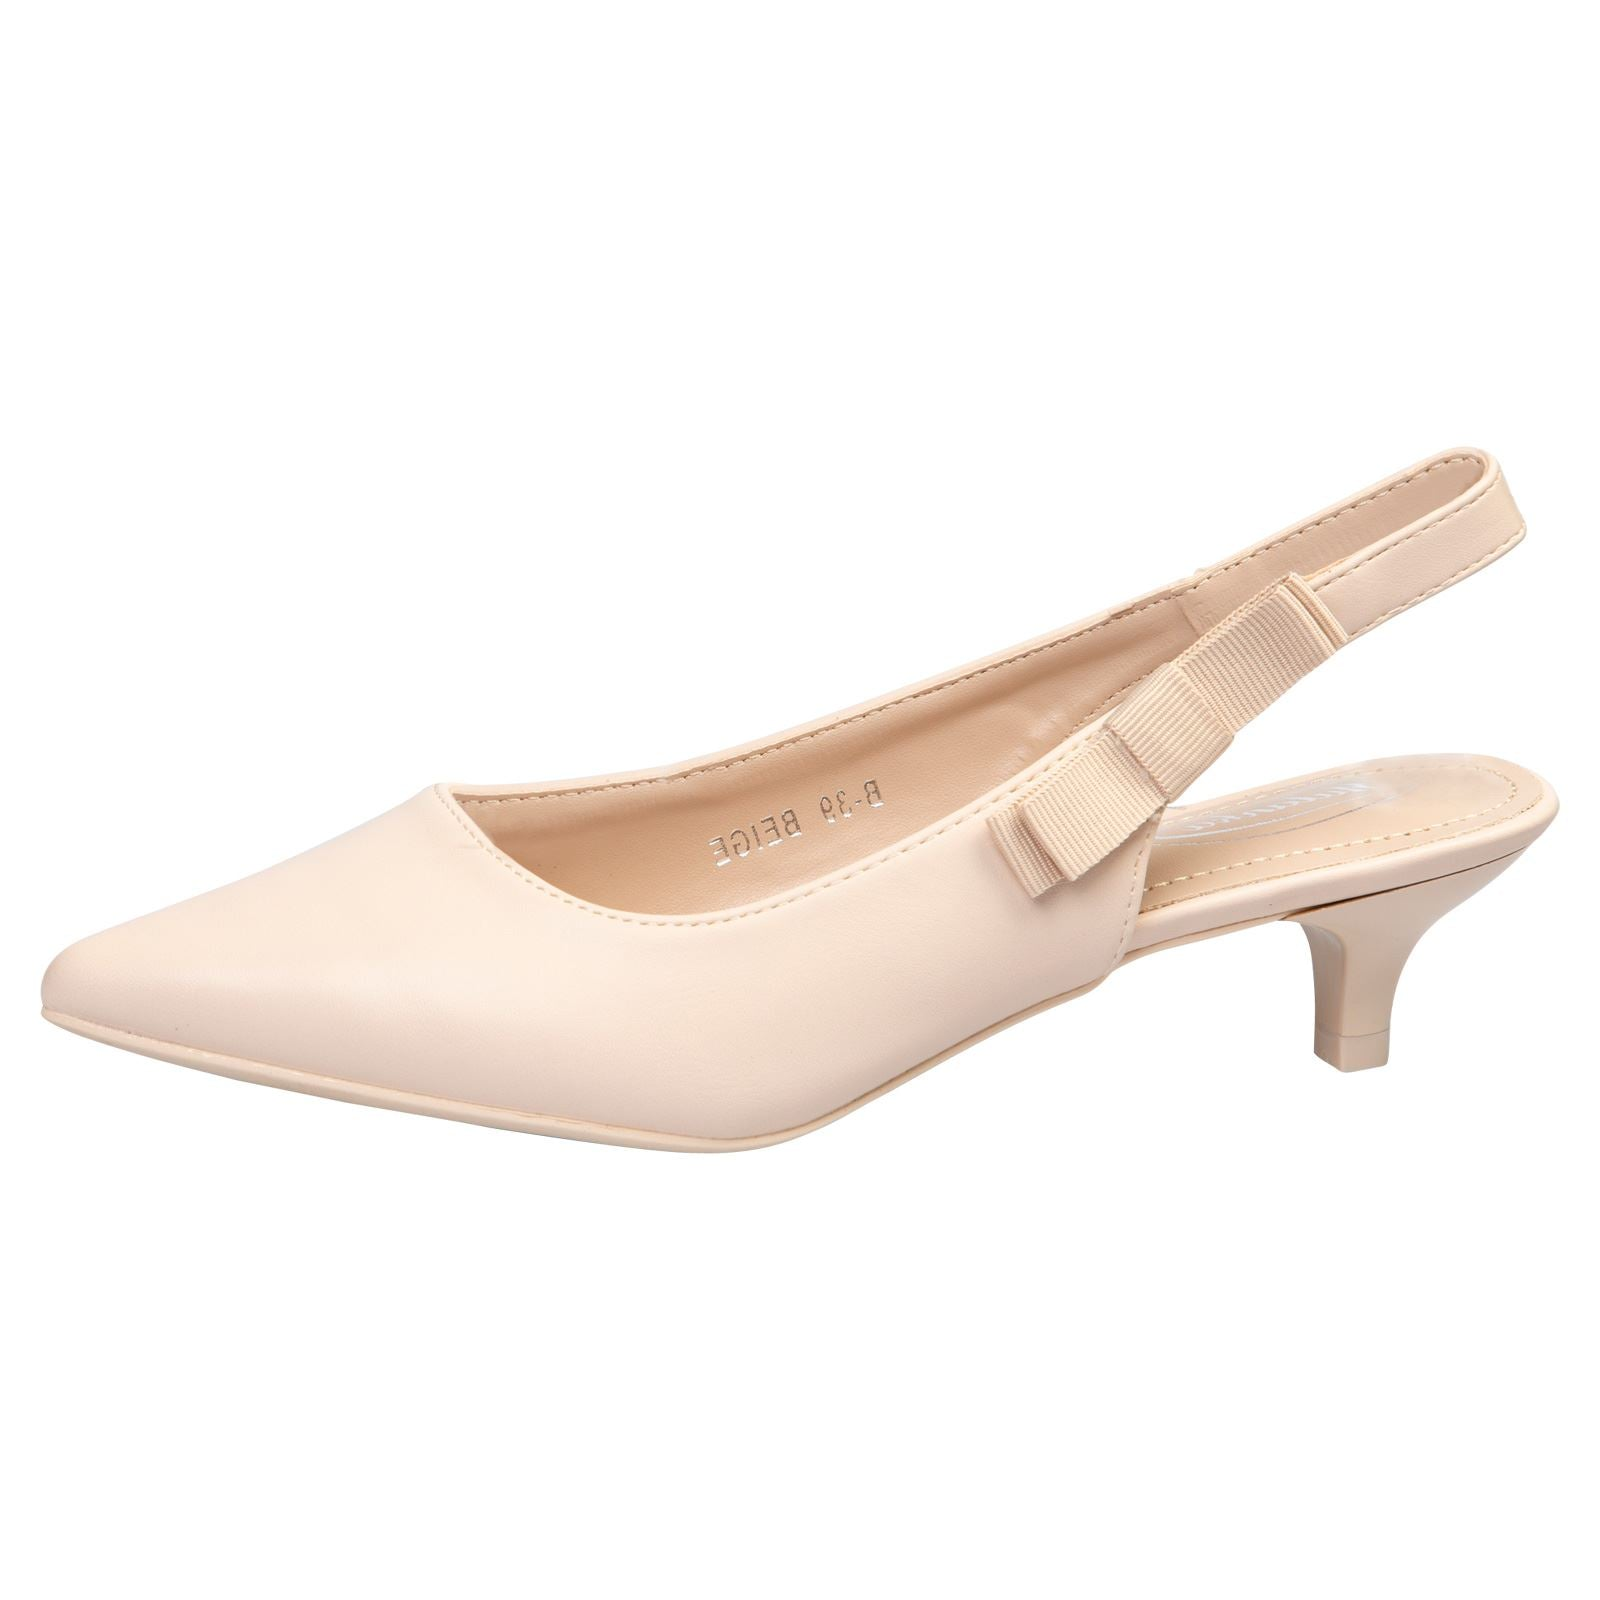 Alora Slingback Pumps in Beige Nude Faux Leather - Feet First Fashion